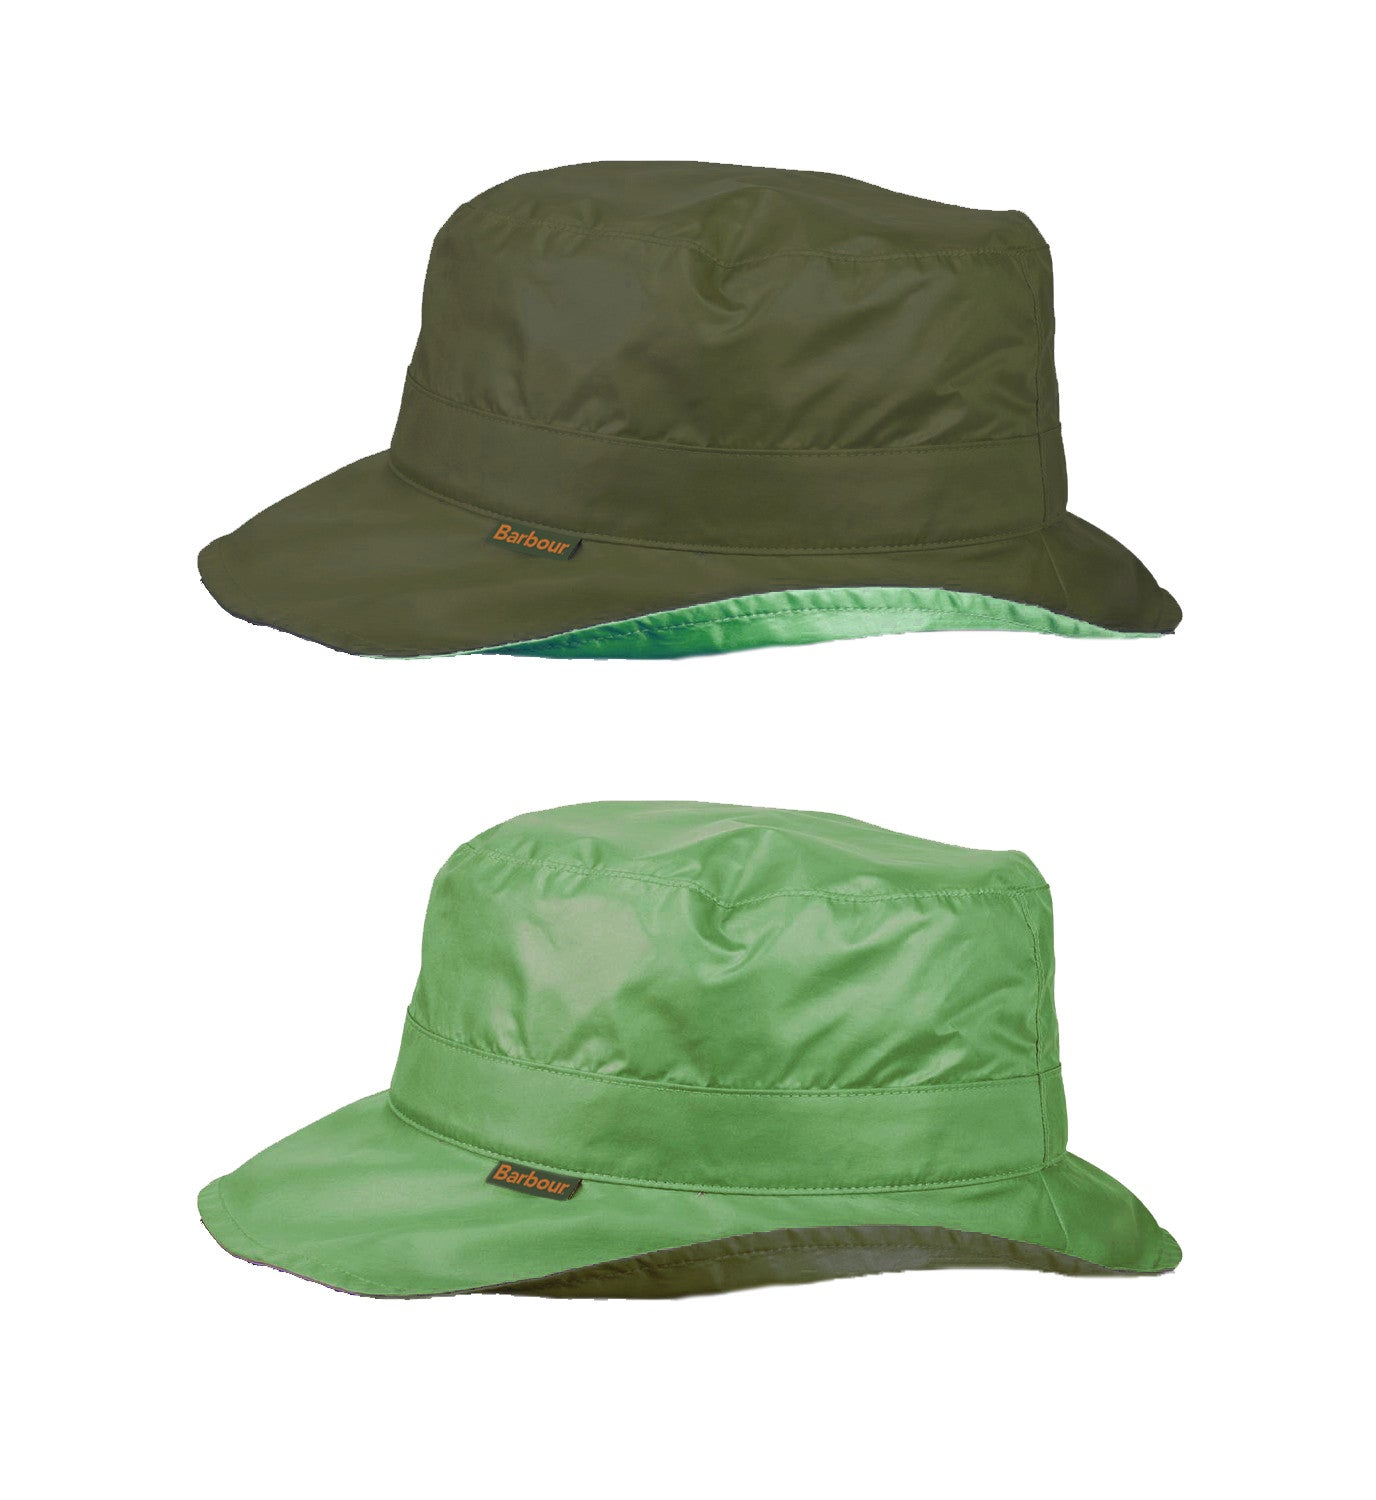 Barbour Reverible Pull On Rain Hat - North Shore Saddlery